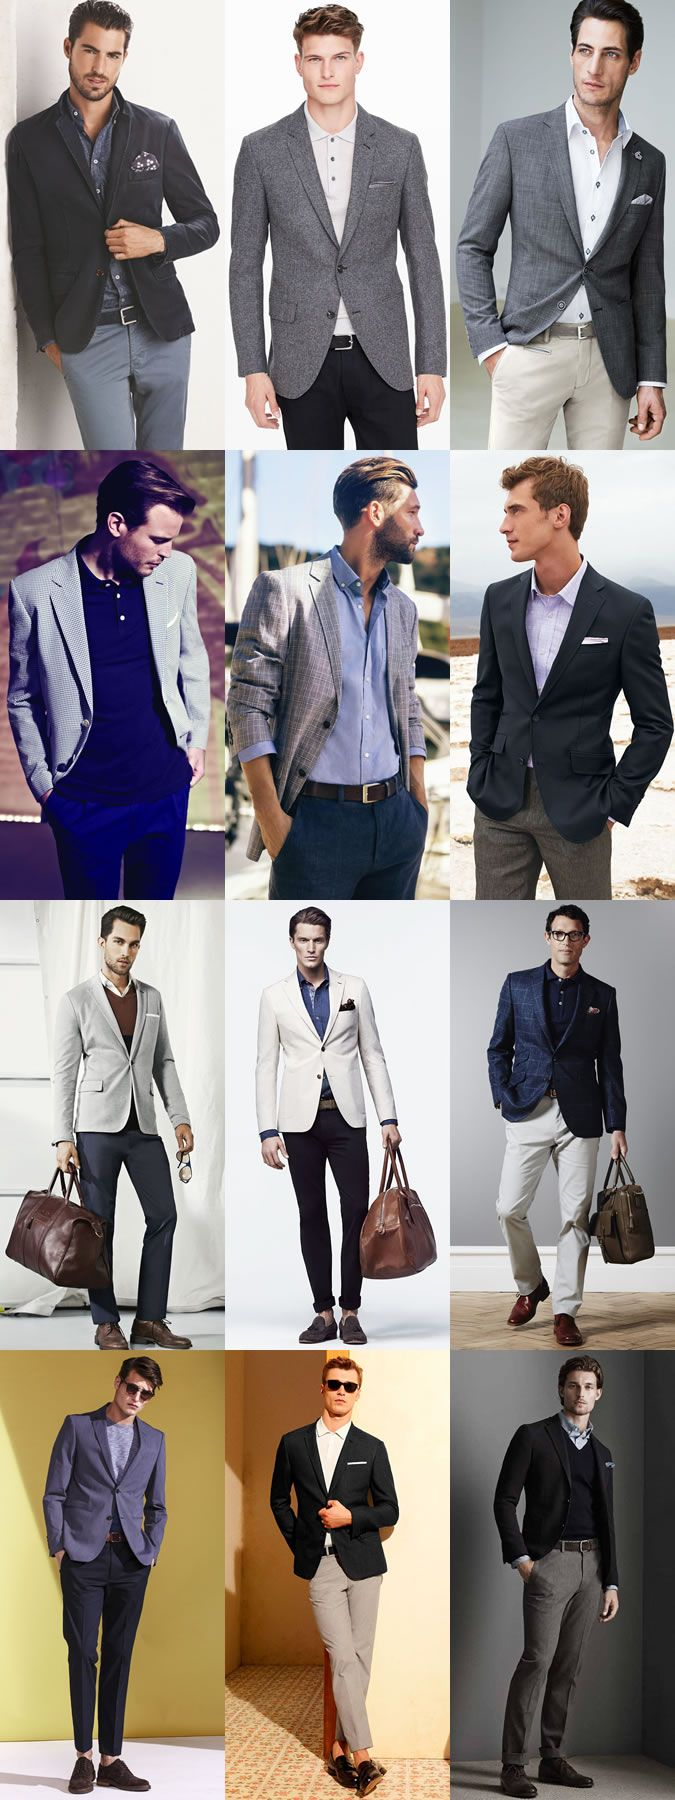 e08ec13f51b Men s Business-Casual Outfit Inspiration Lookbook - Blazers Mixed With  Oxford Shirts